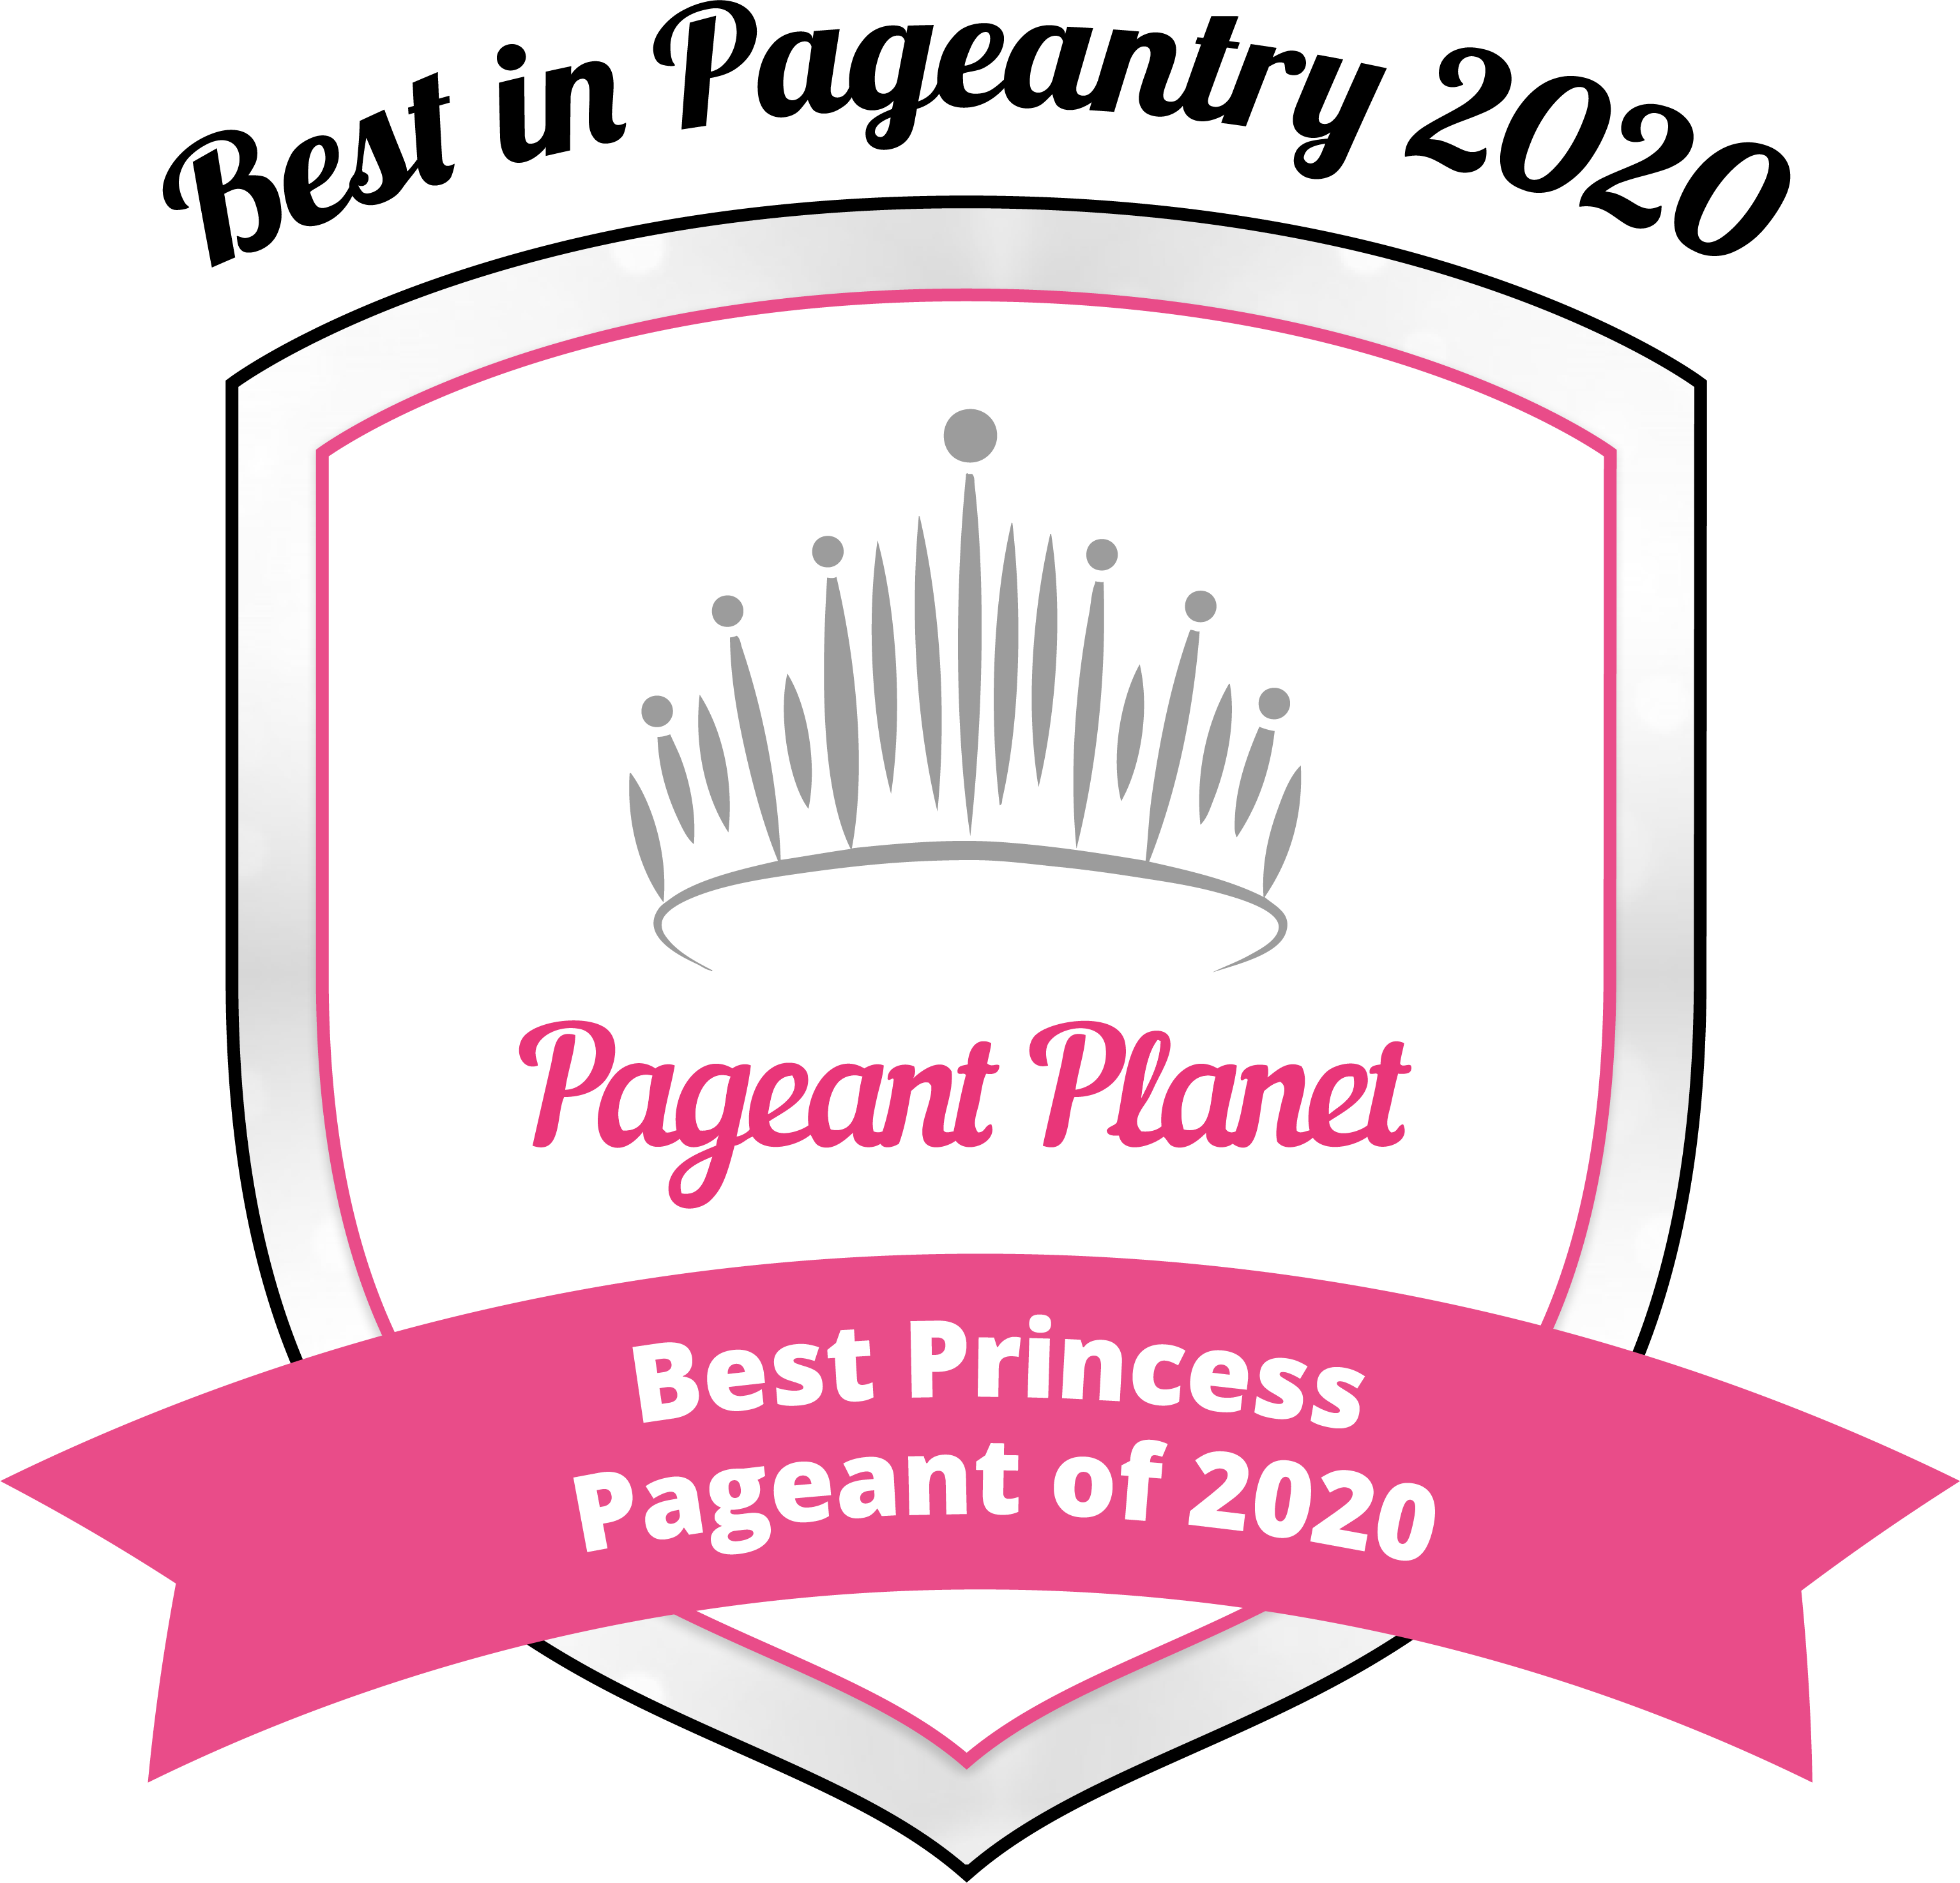 Best Princess Pageant of 2020